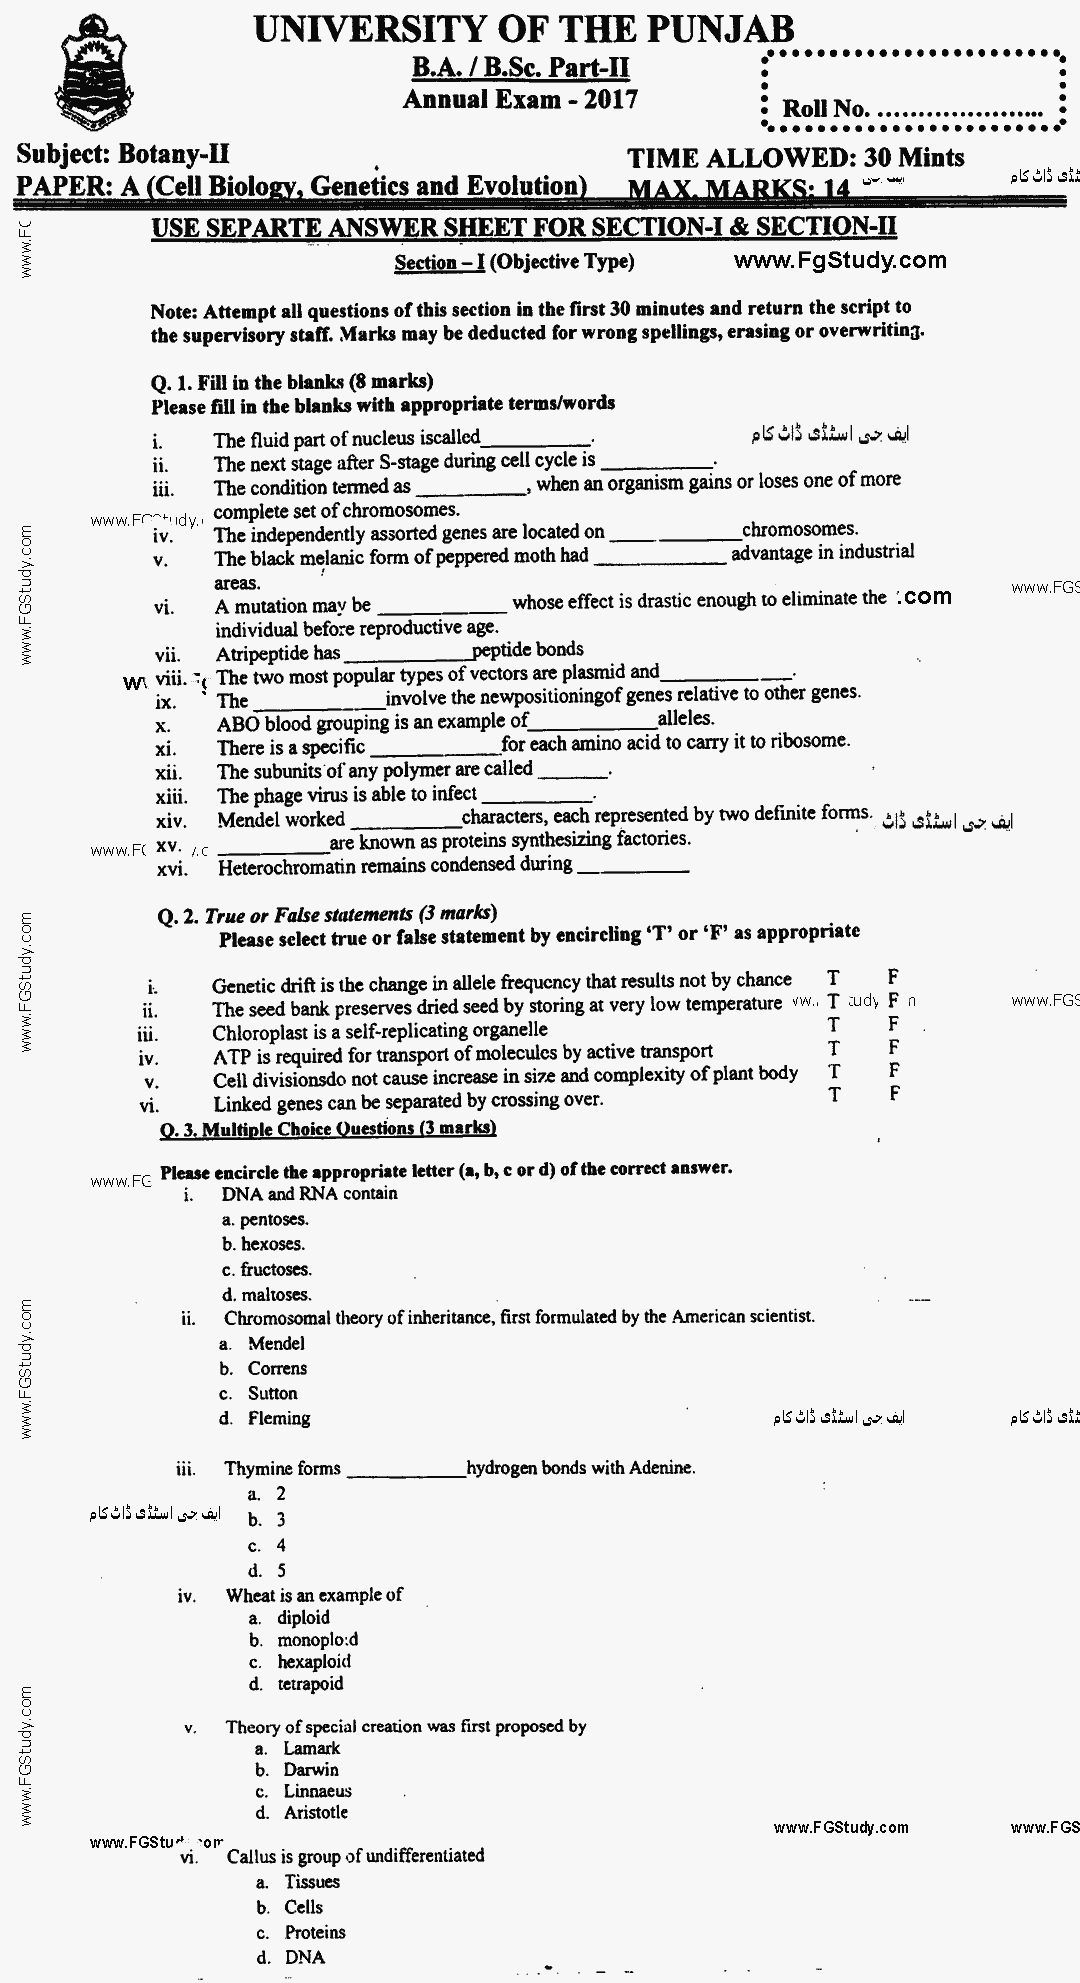 Botany Cell Biology Genetics and Evolution Objective BA Part 2 Past Papers 2017